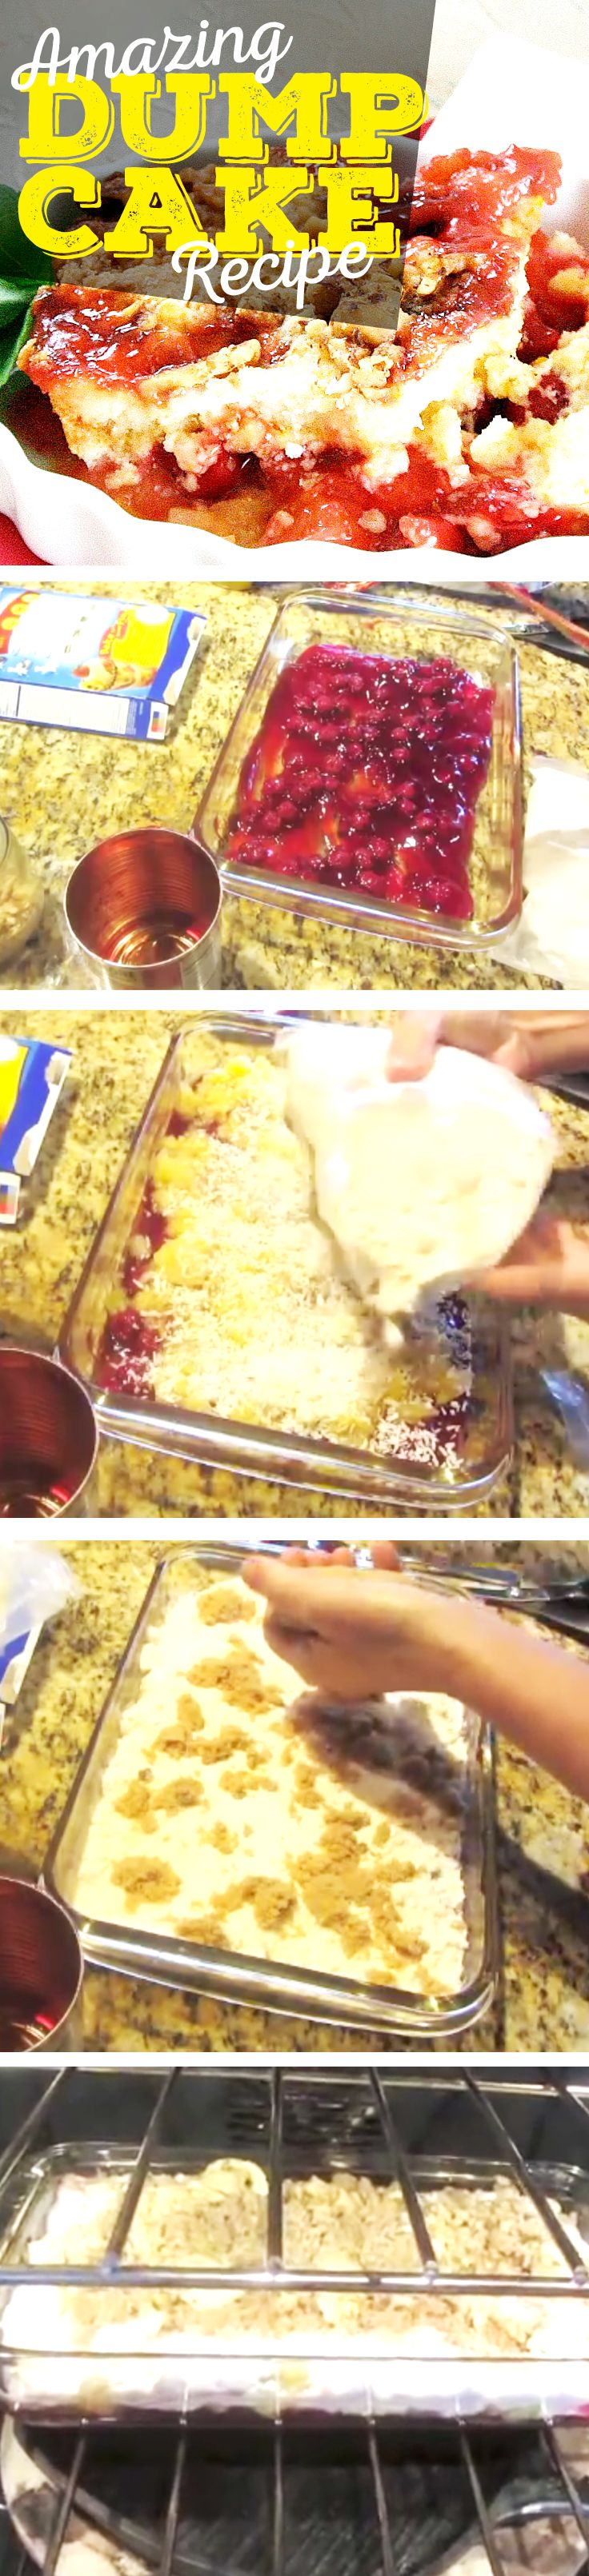 Dump Cake Recipes: Cherry Dump Cake Recipe... This is one of the best cakes with fruit I've ever had and one of the easiest dessert recipes!